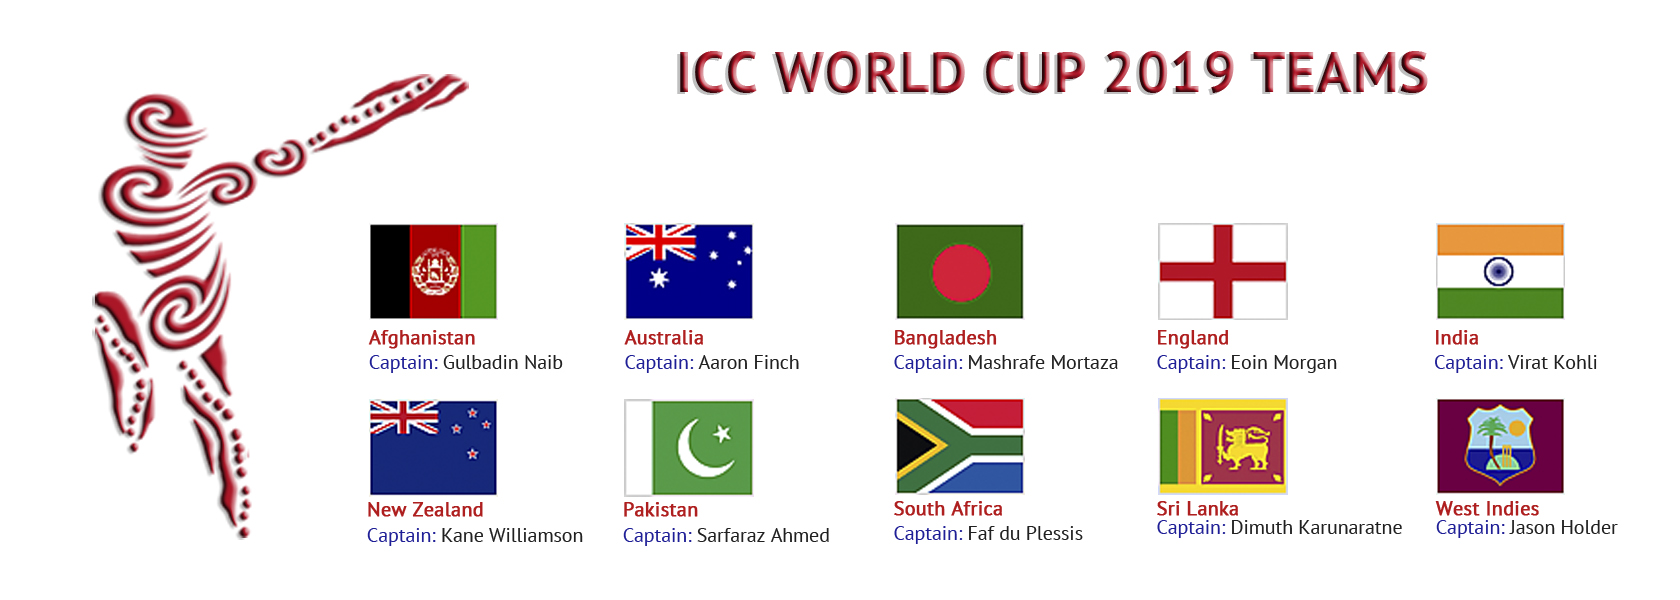 ICC World Cup 2015 Results